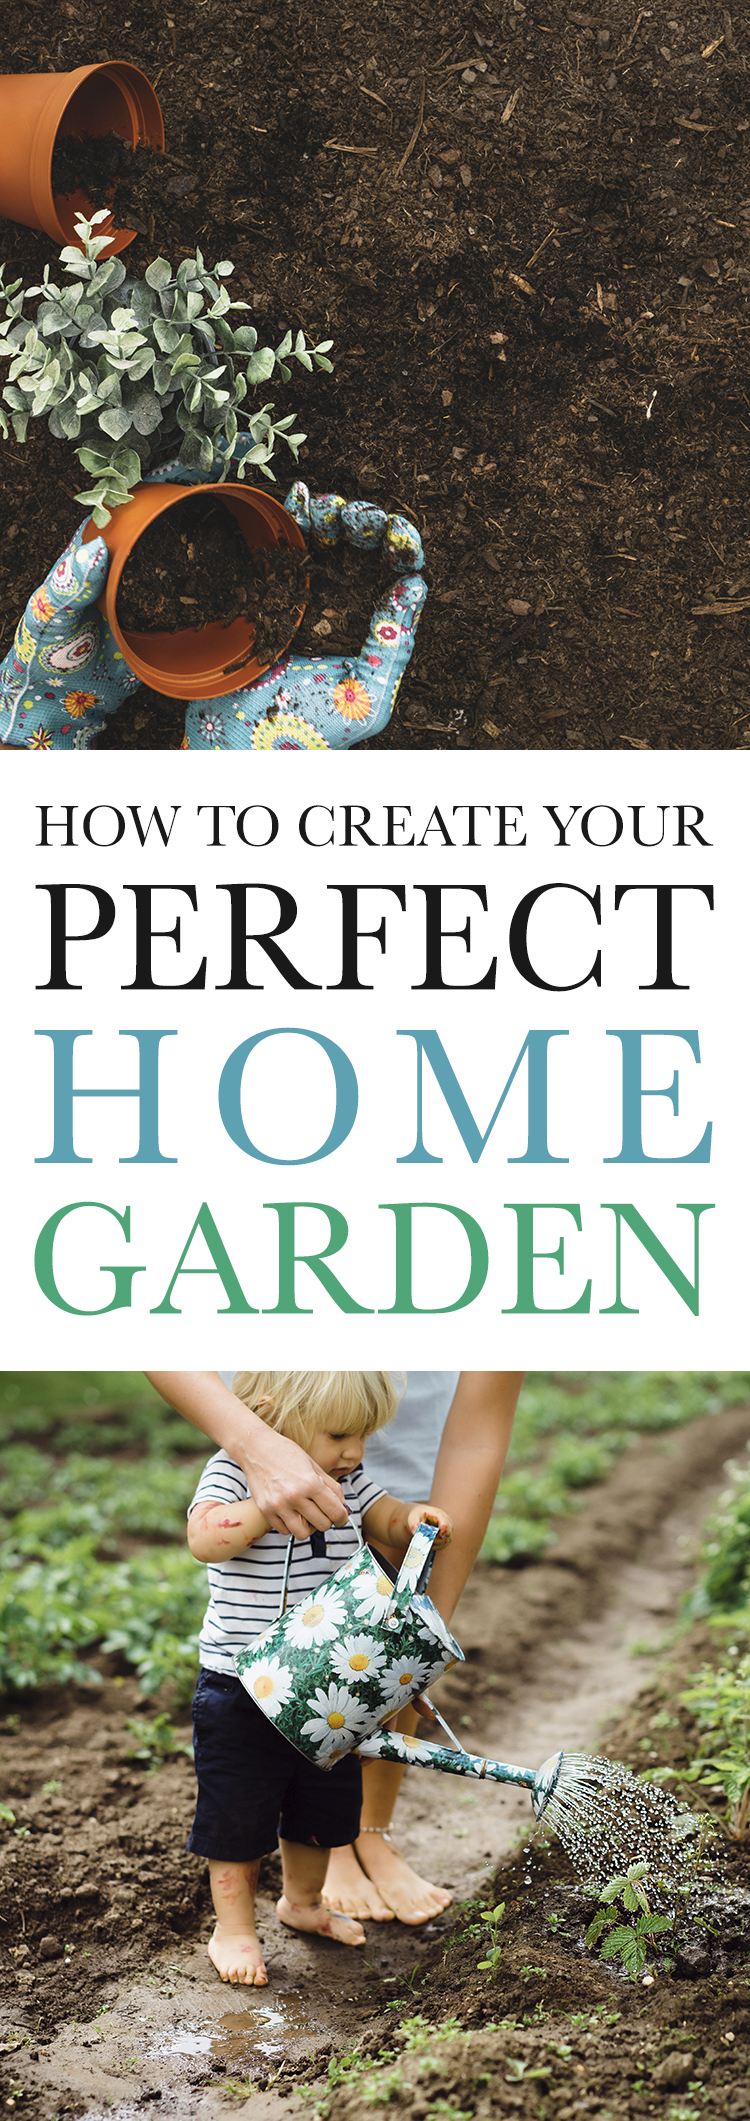 How to Create Your Perfect Home Garden!